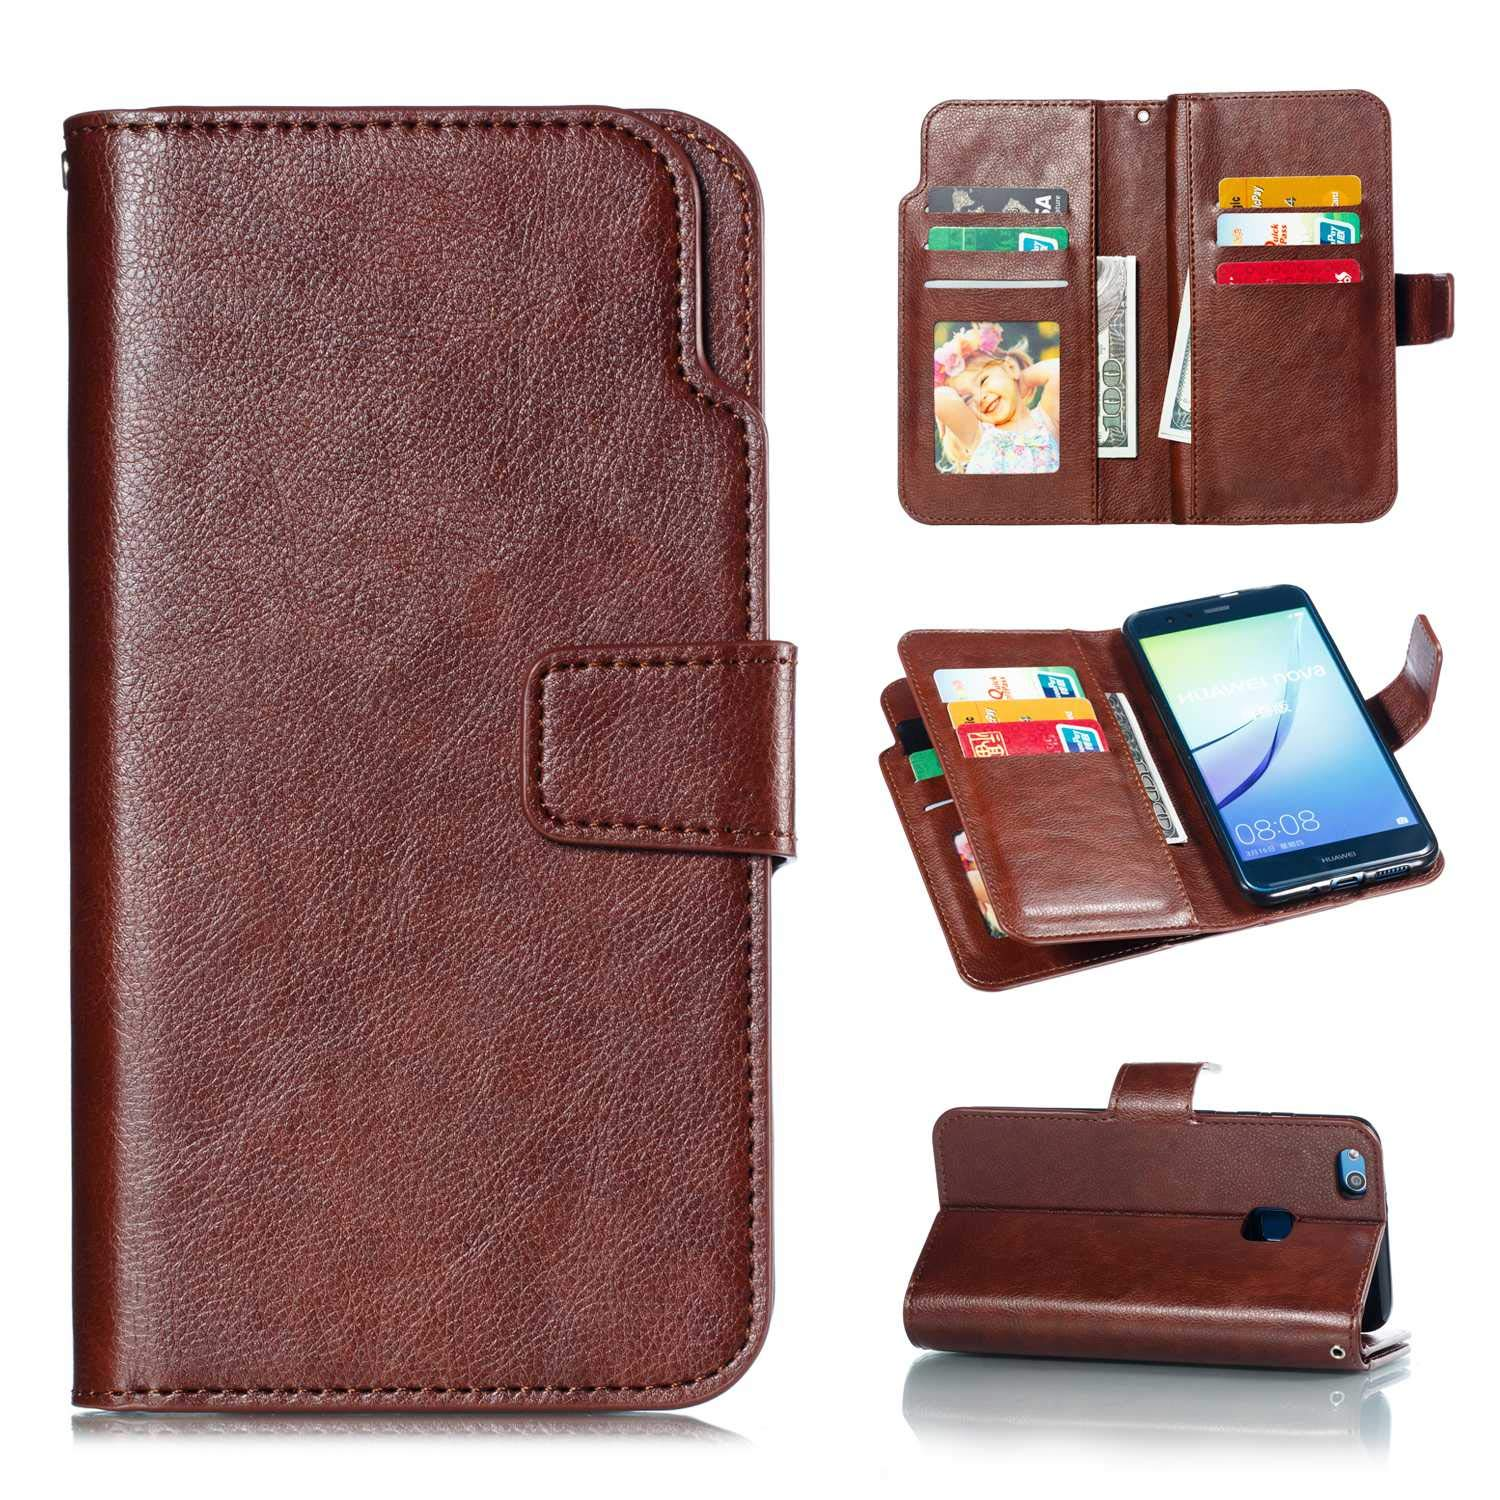 CUSKING Huawei P10 Lite Case, Leather Flip Bookstyle Case Magnetic Wallet Cover with Card Holder for Huawei P10 Lite - Brown